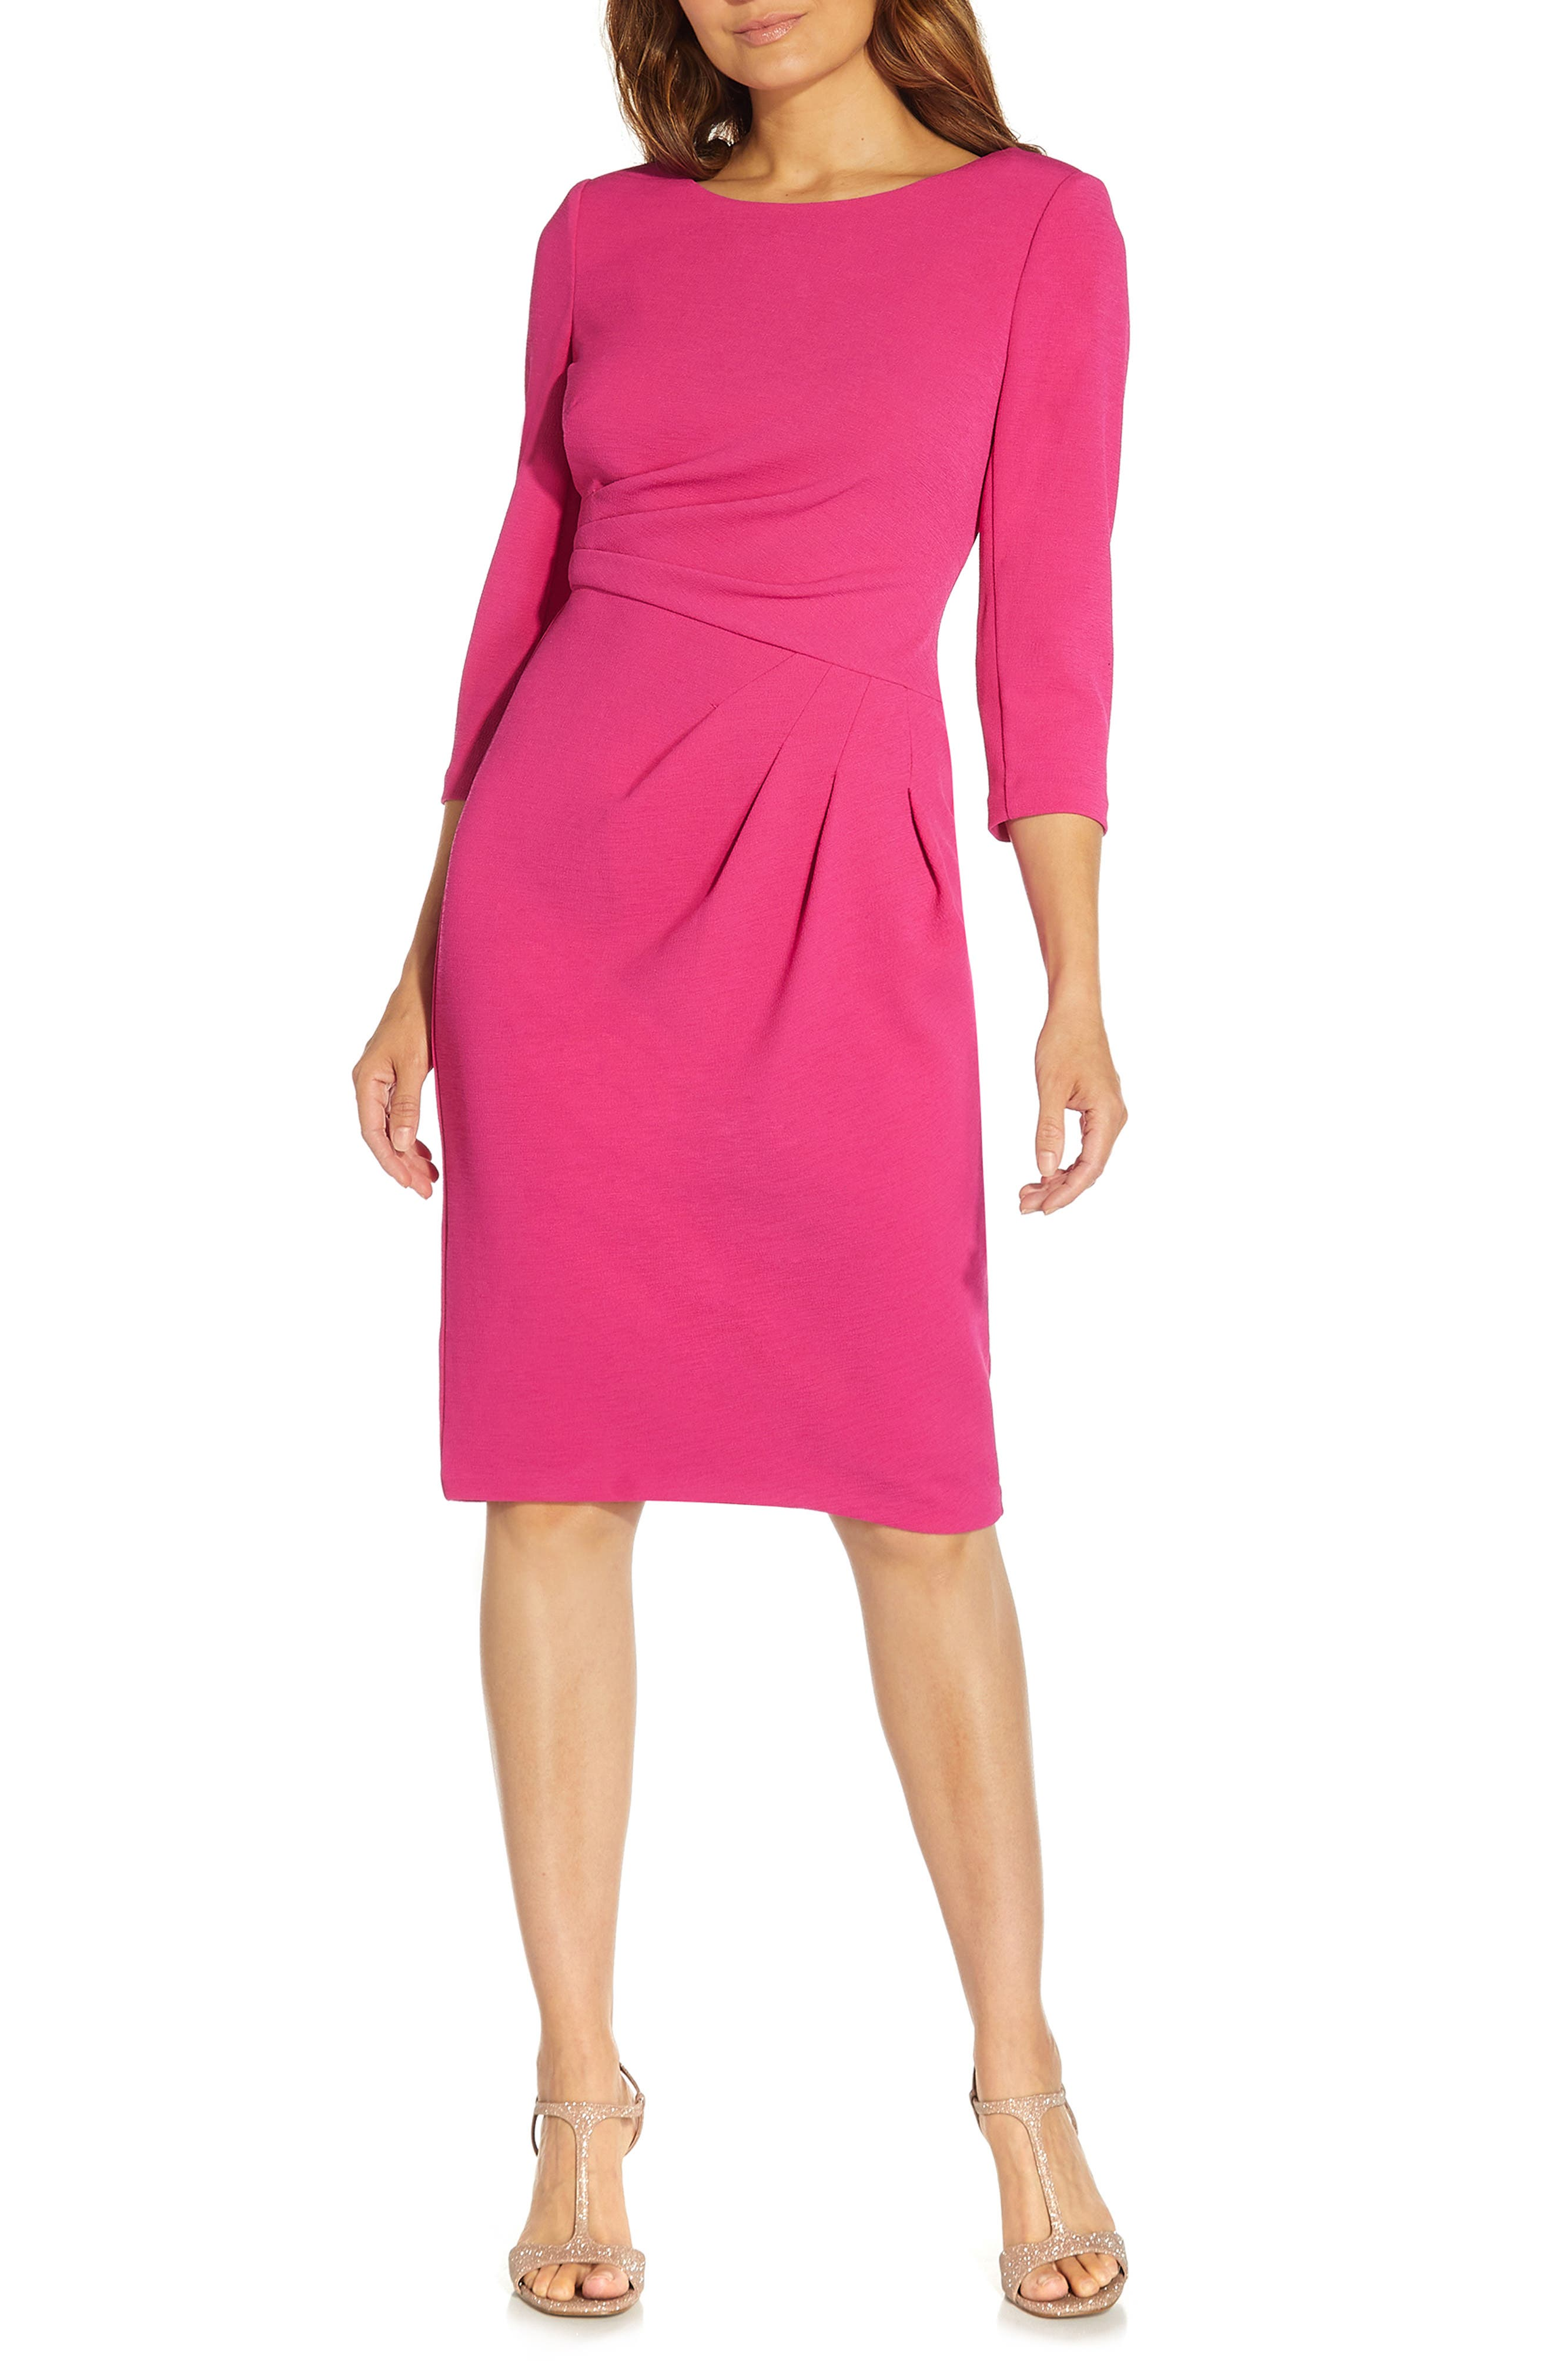 80s Dresses | Casual to Party Dresses Womens Adrianna Papell Rio Drape Knit Sheath Dress Size 16 - Pink $139.00 AT vintagedancer.com